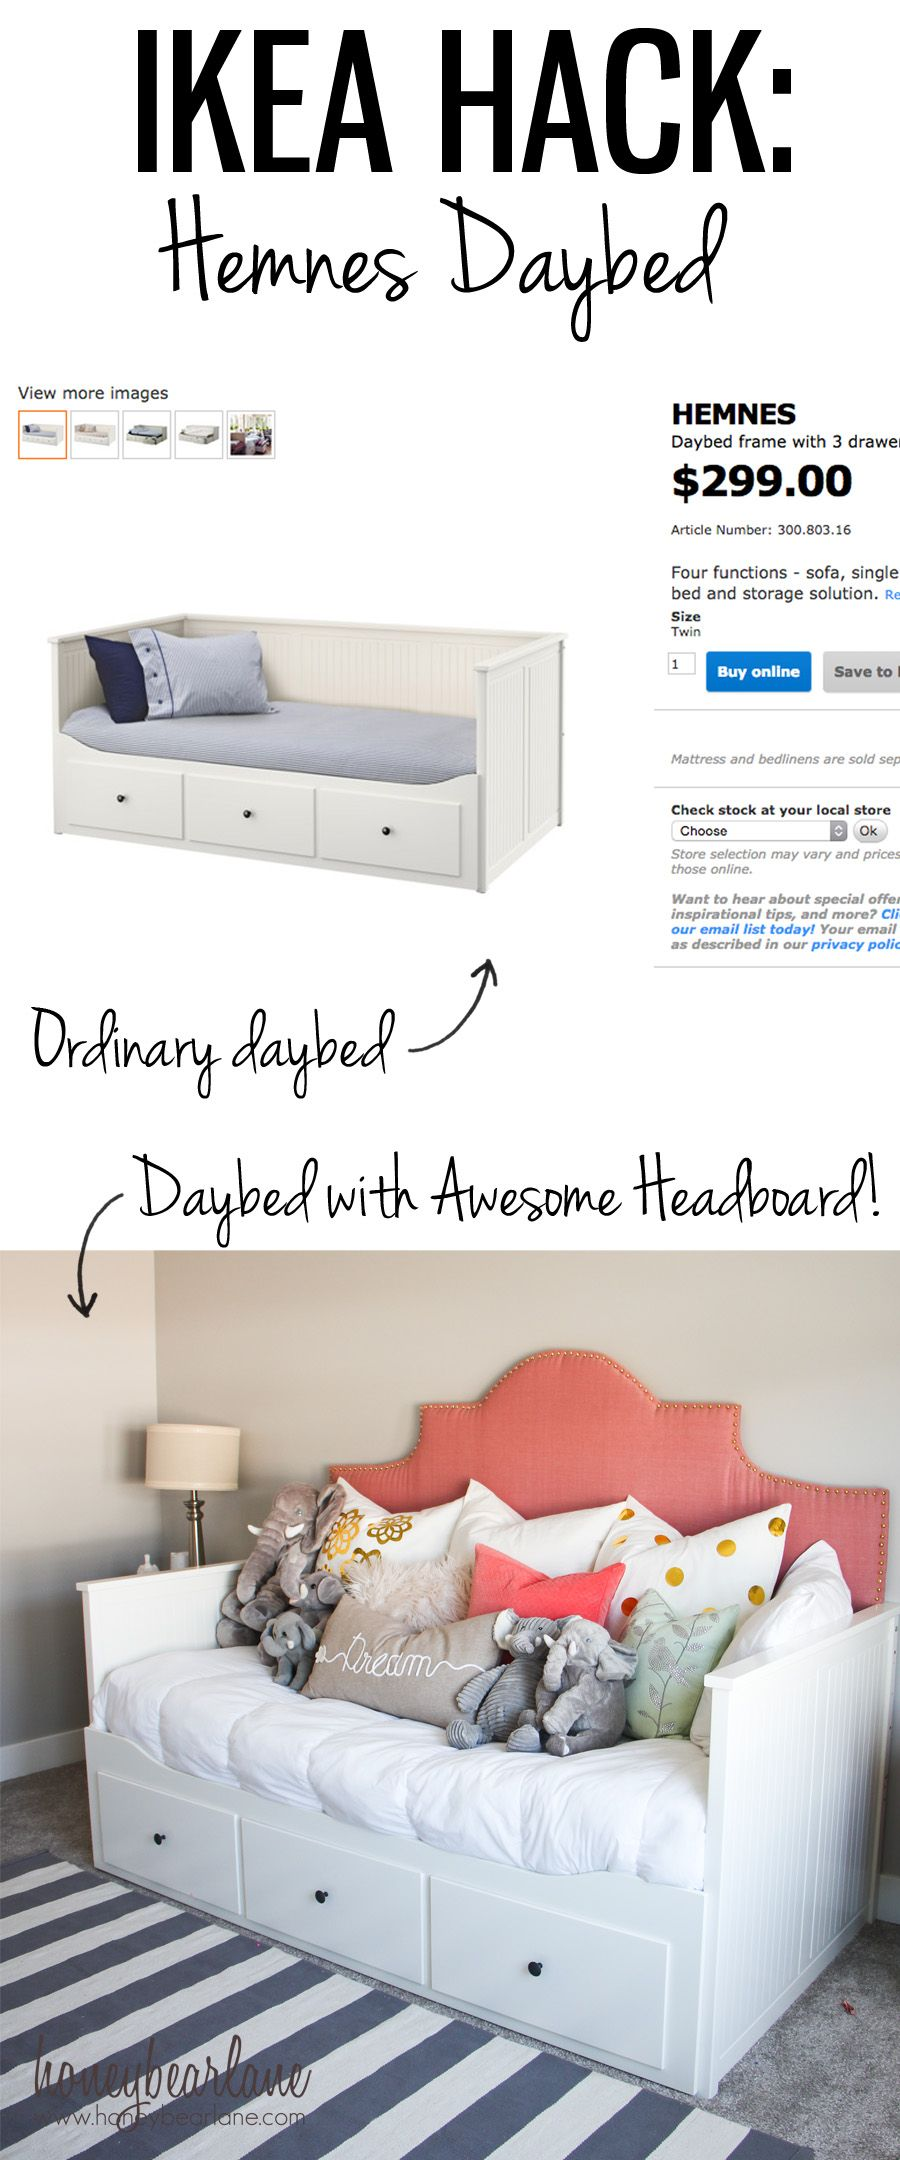 Ikea day beds hemnes home design ideas - Hemnes Daybed Ikea Hack